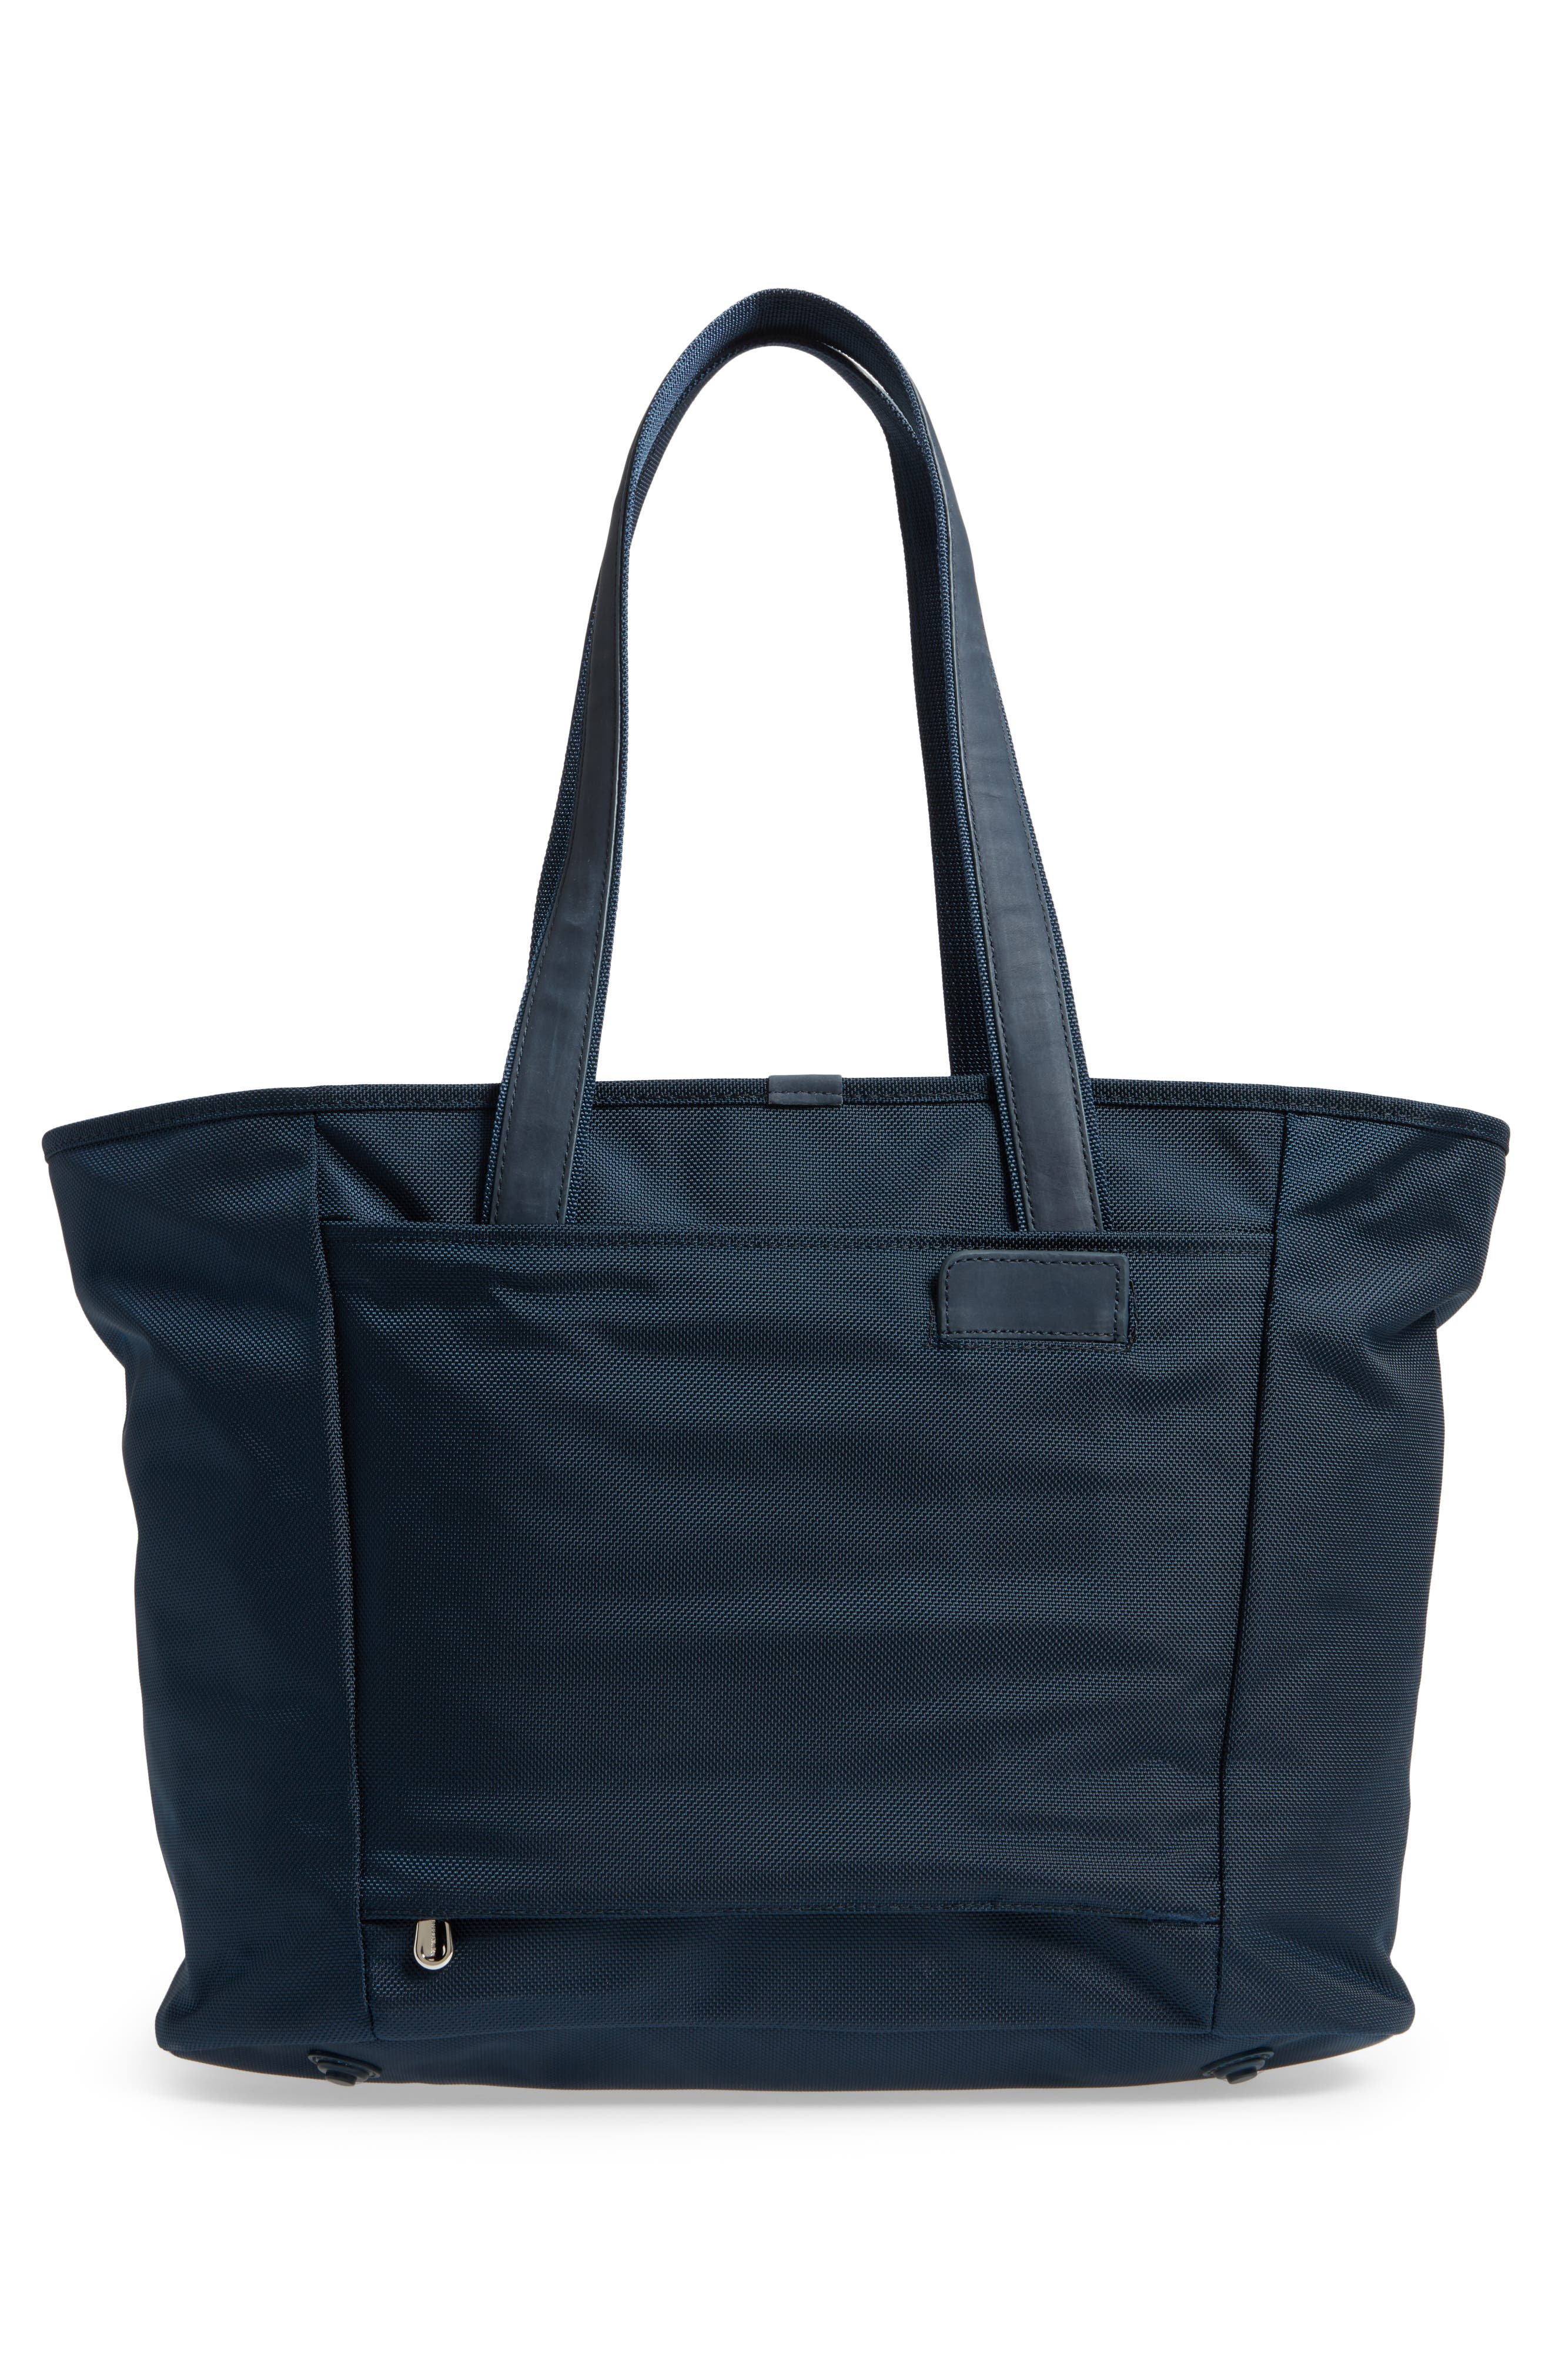 Ltd. Edition Tote Bag,                             Alternate thumbnail 3, color,                             NAVY